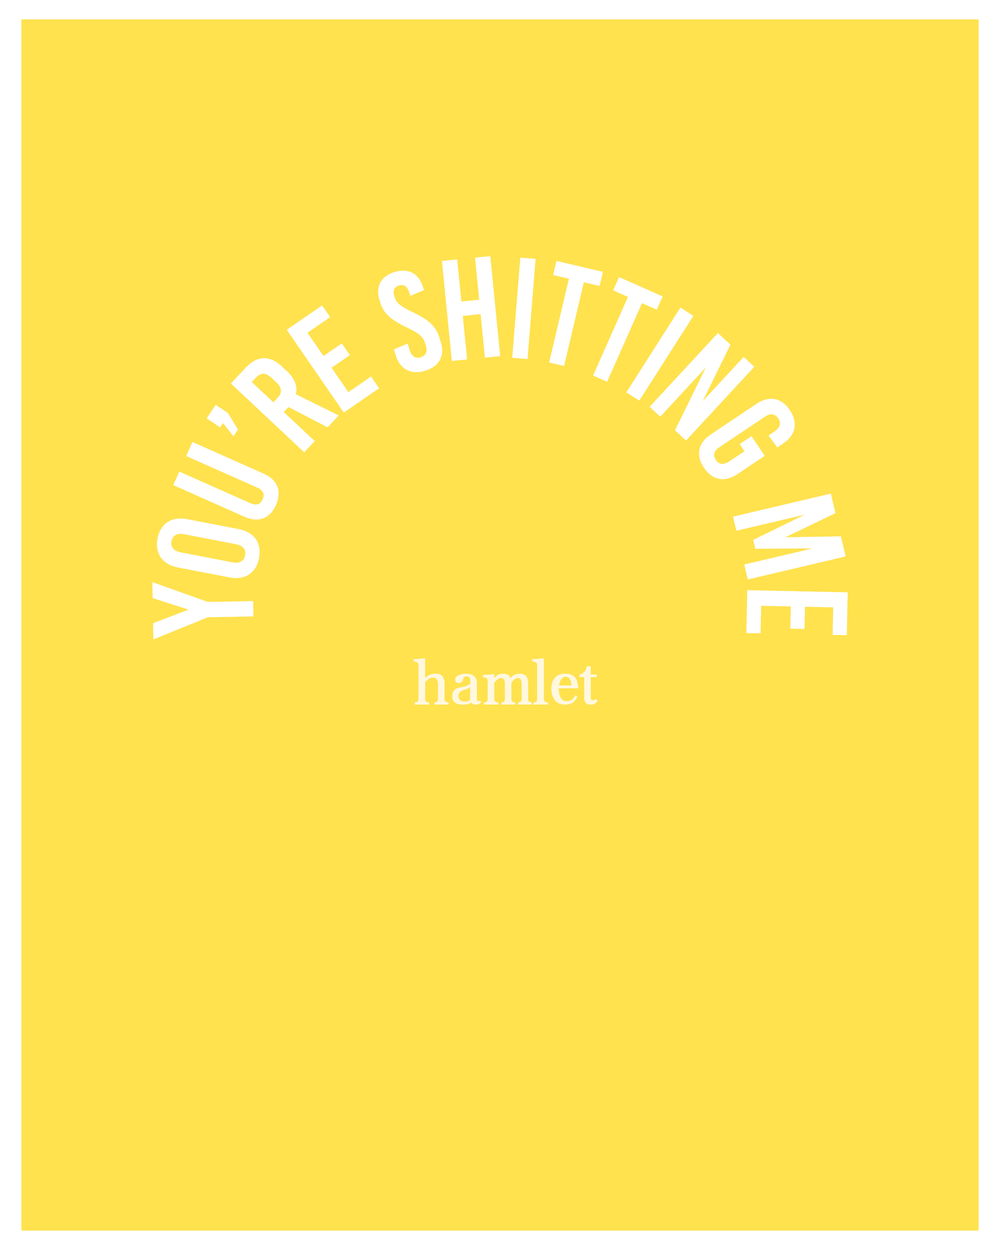 Hamlet Posters ACT I-08.png